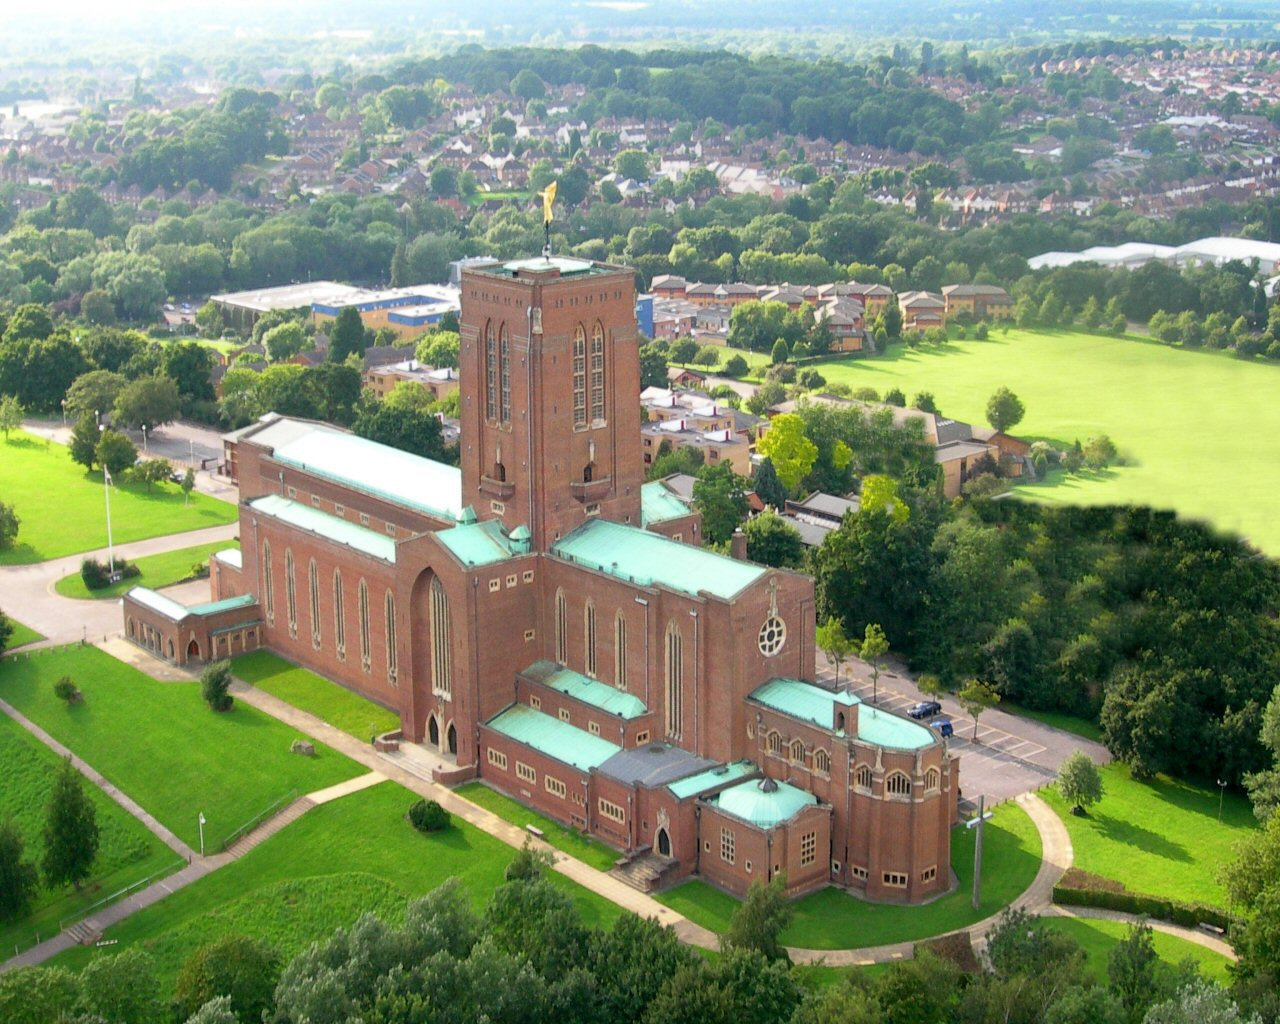 Image: Aerial view of Guildford Cathedral